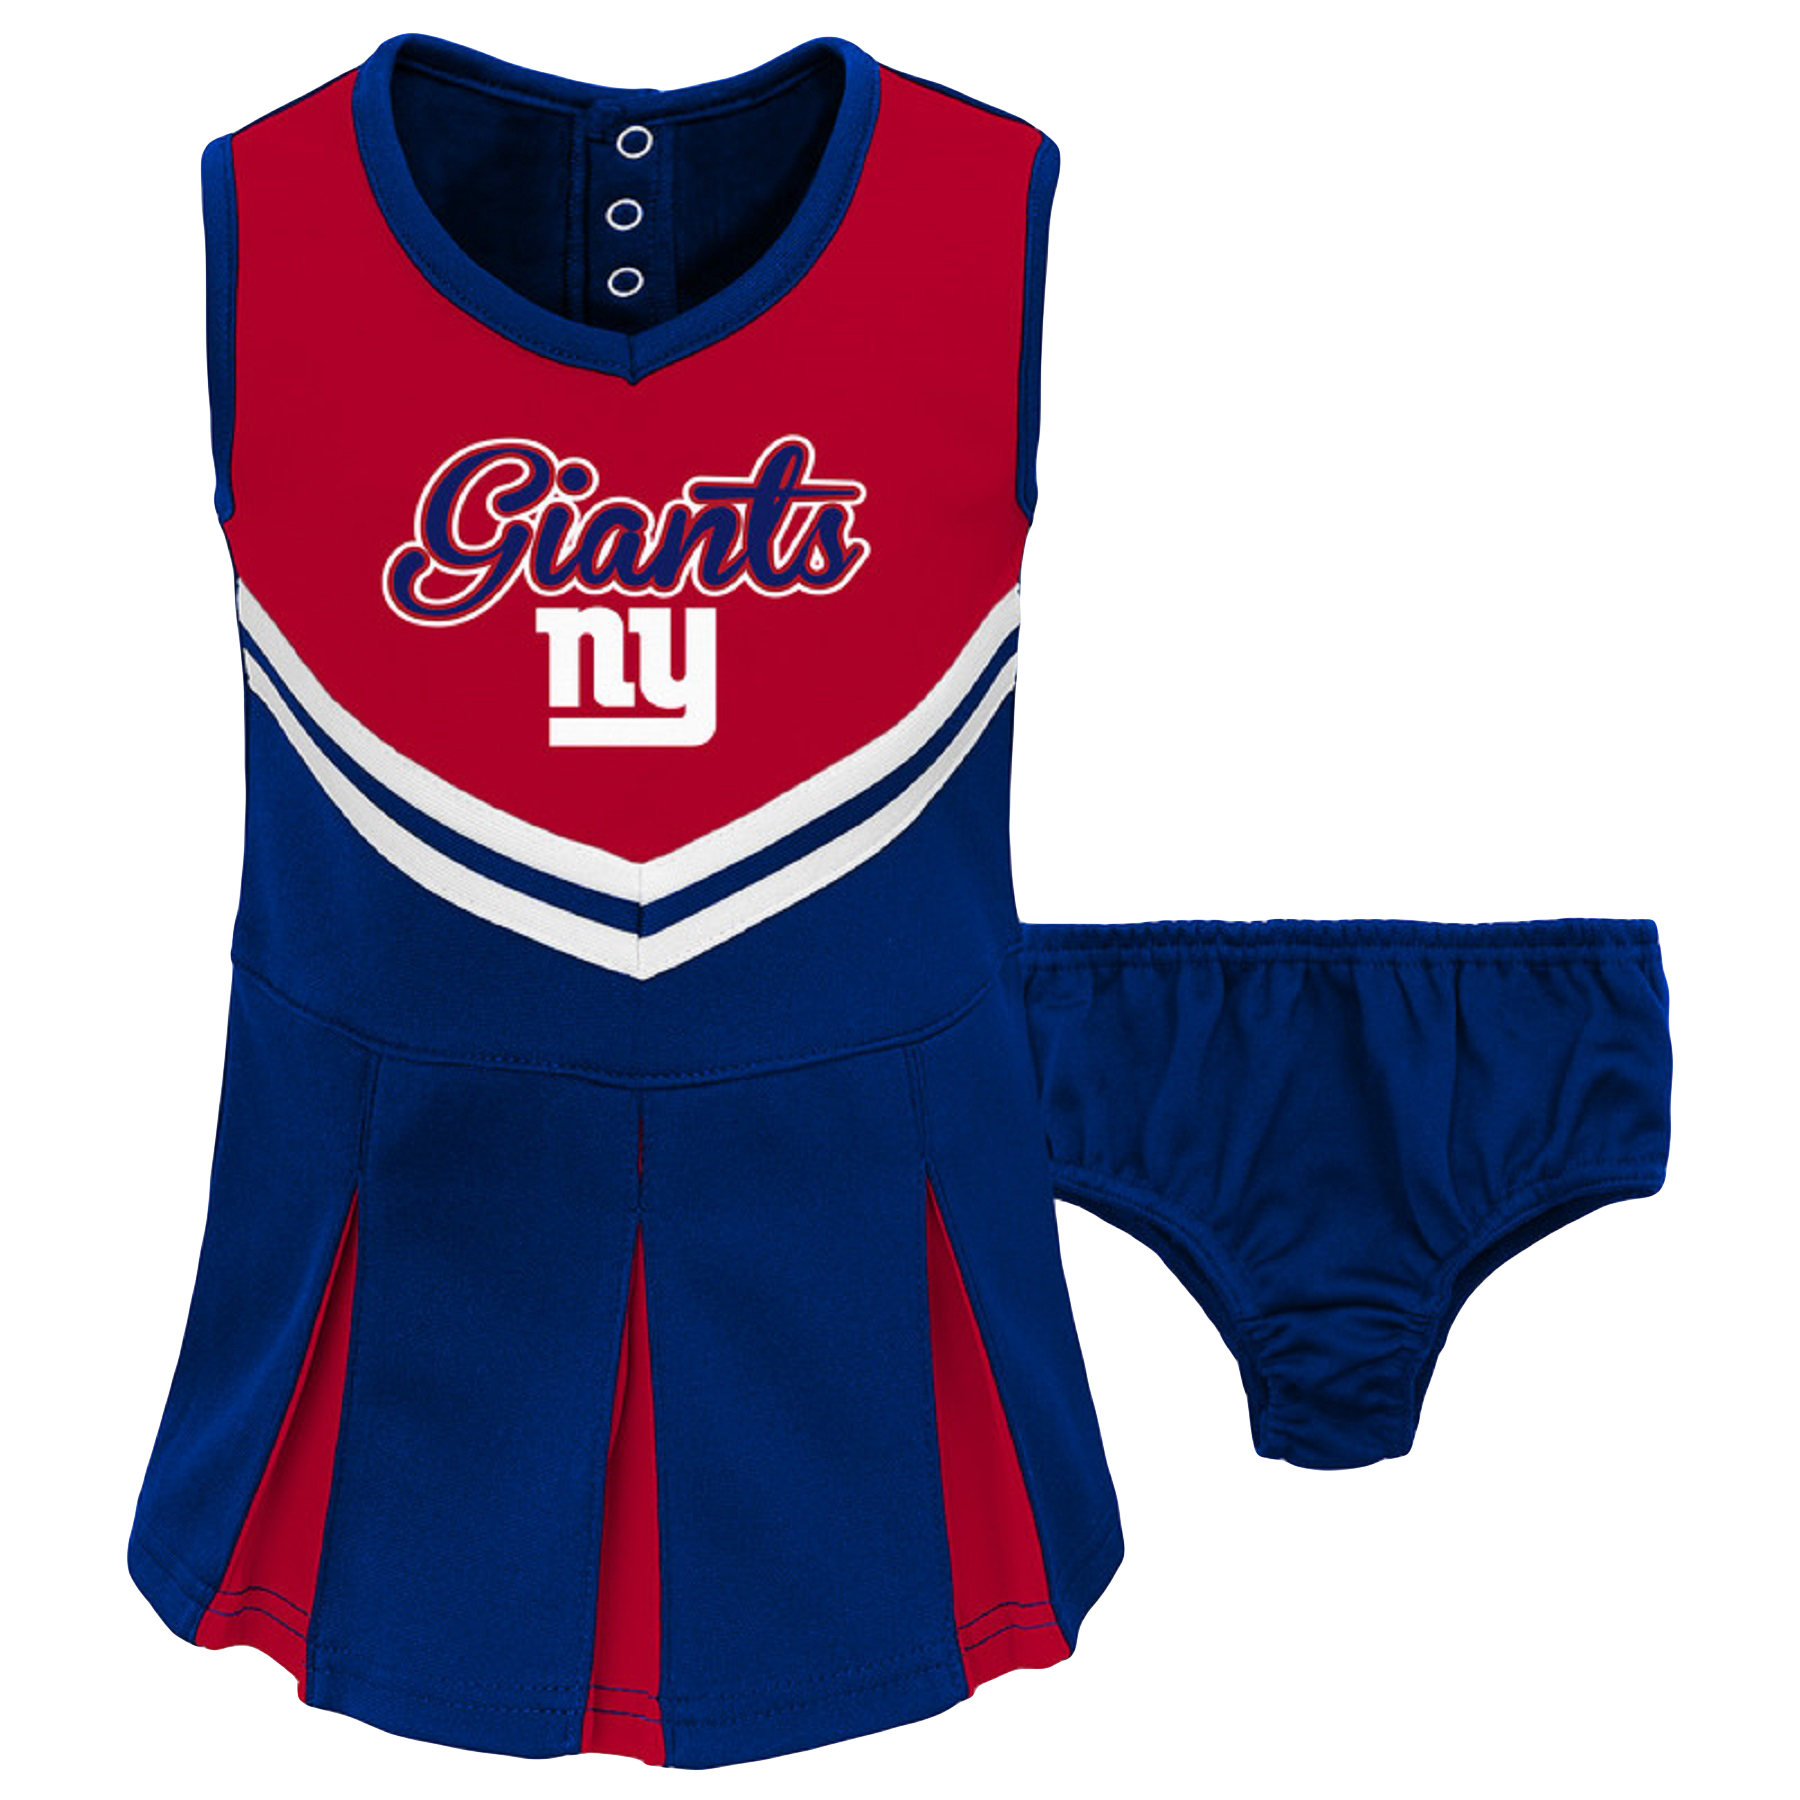 Toddler Red/Royal New York Giants Cheerleader Dress & Bloomers Set